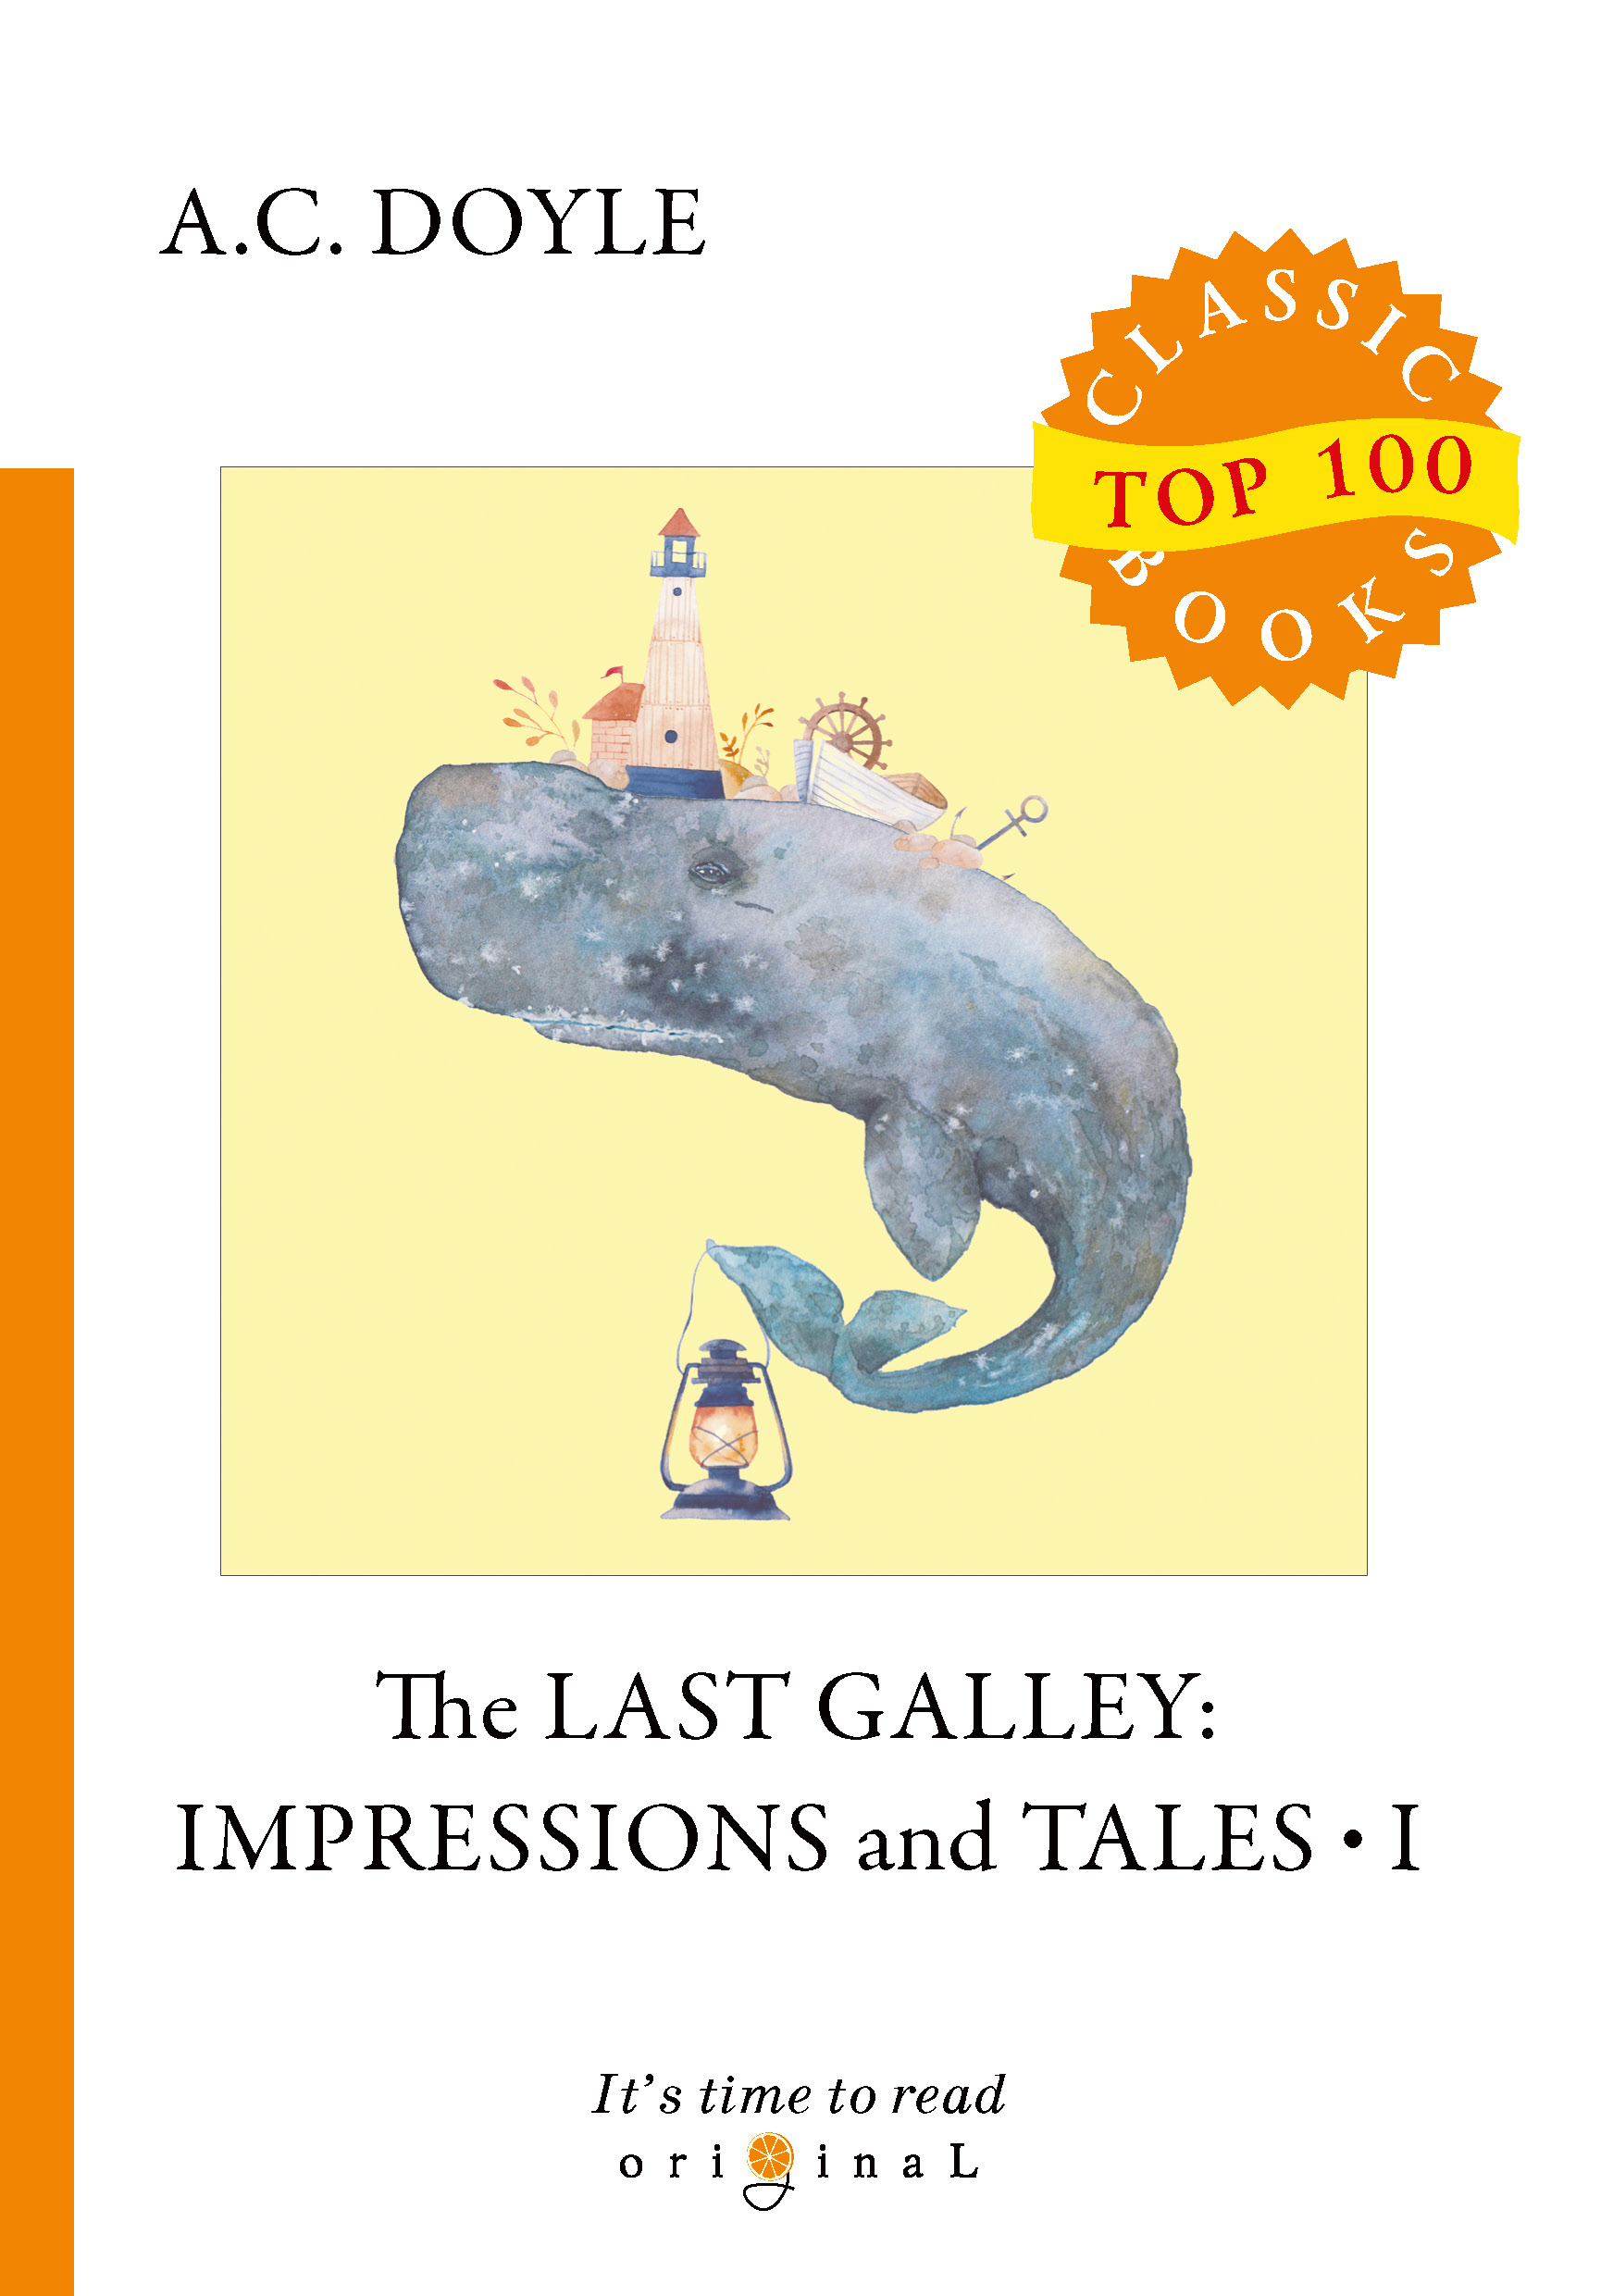 A. C. Doyle The Last Galley. Impressions and Tales arthur conan doyle the last galley impressions and tales ii